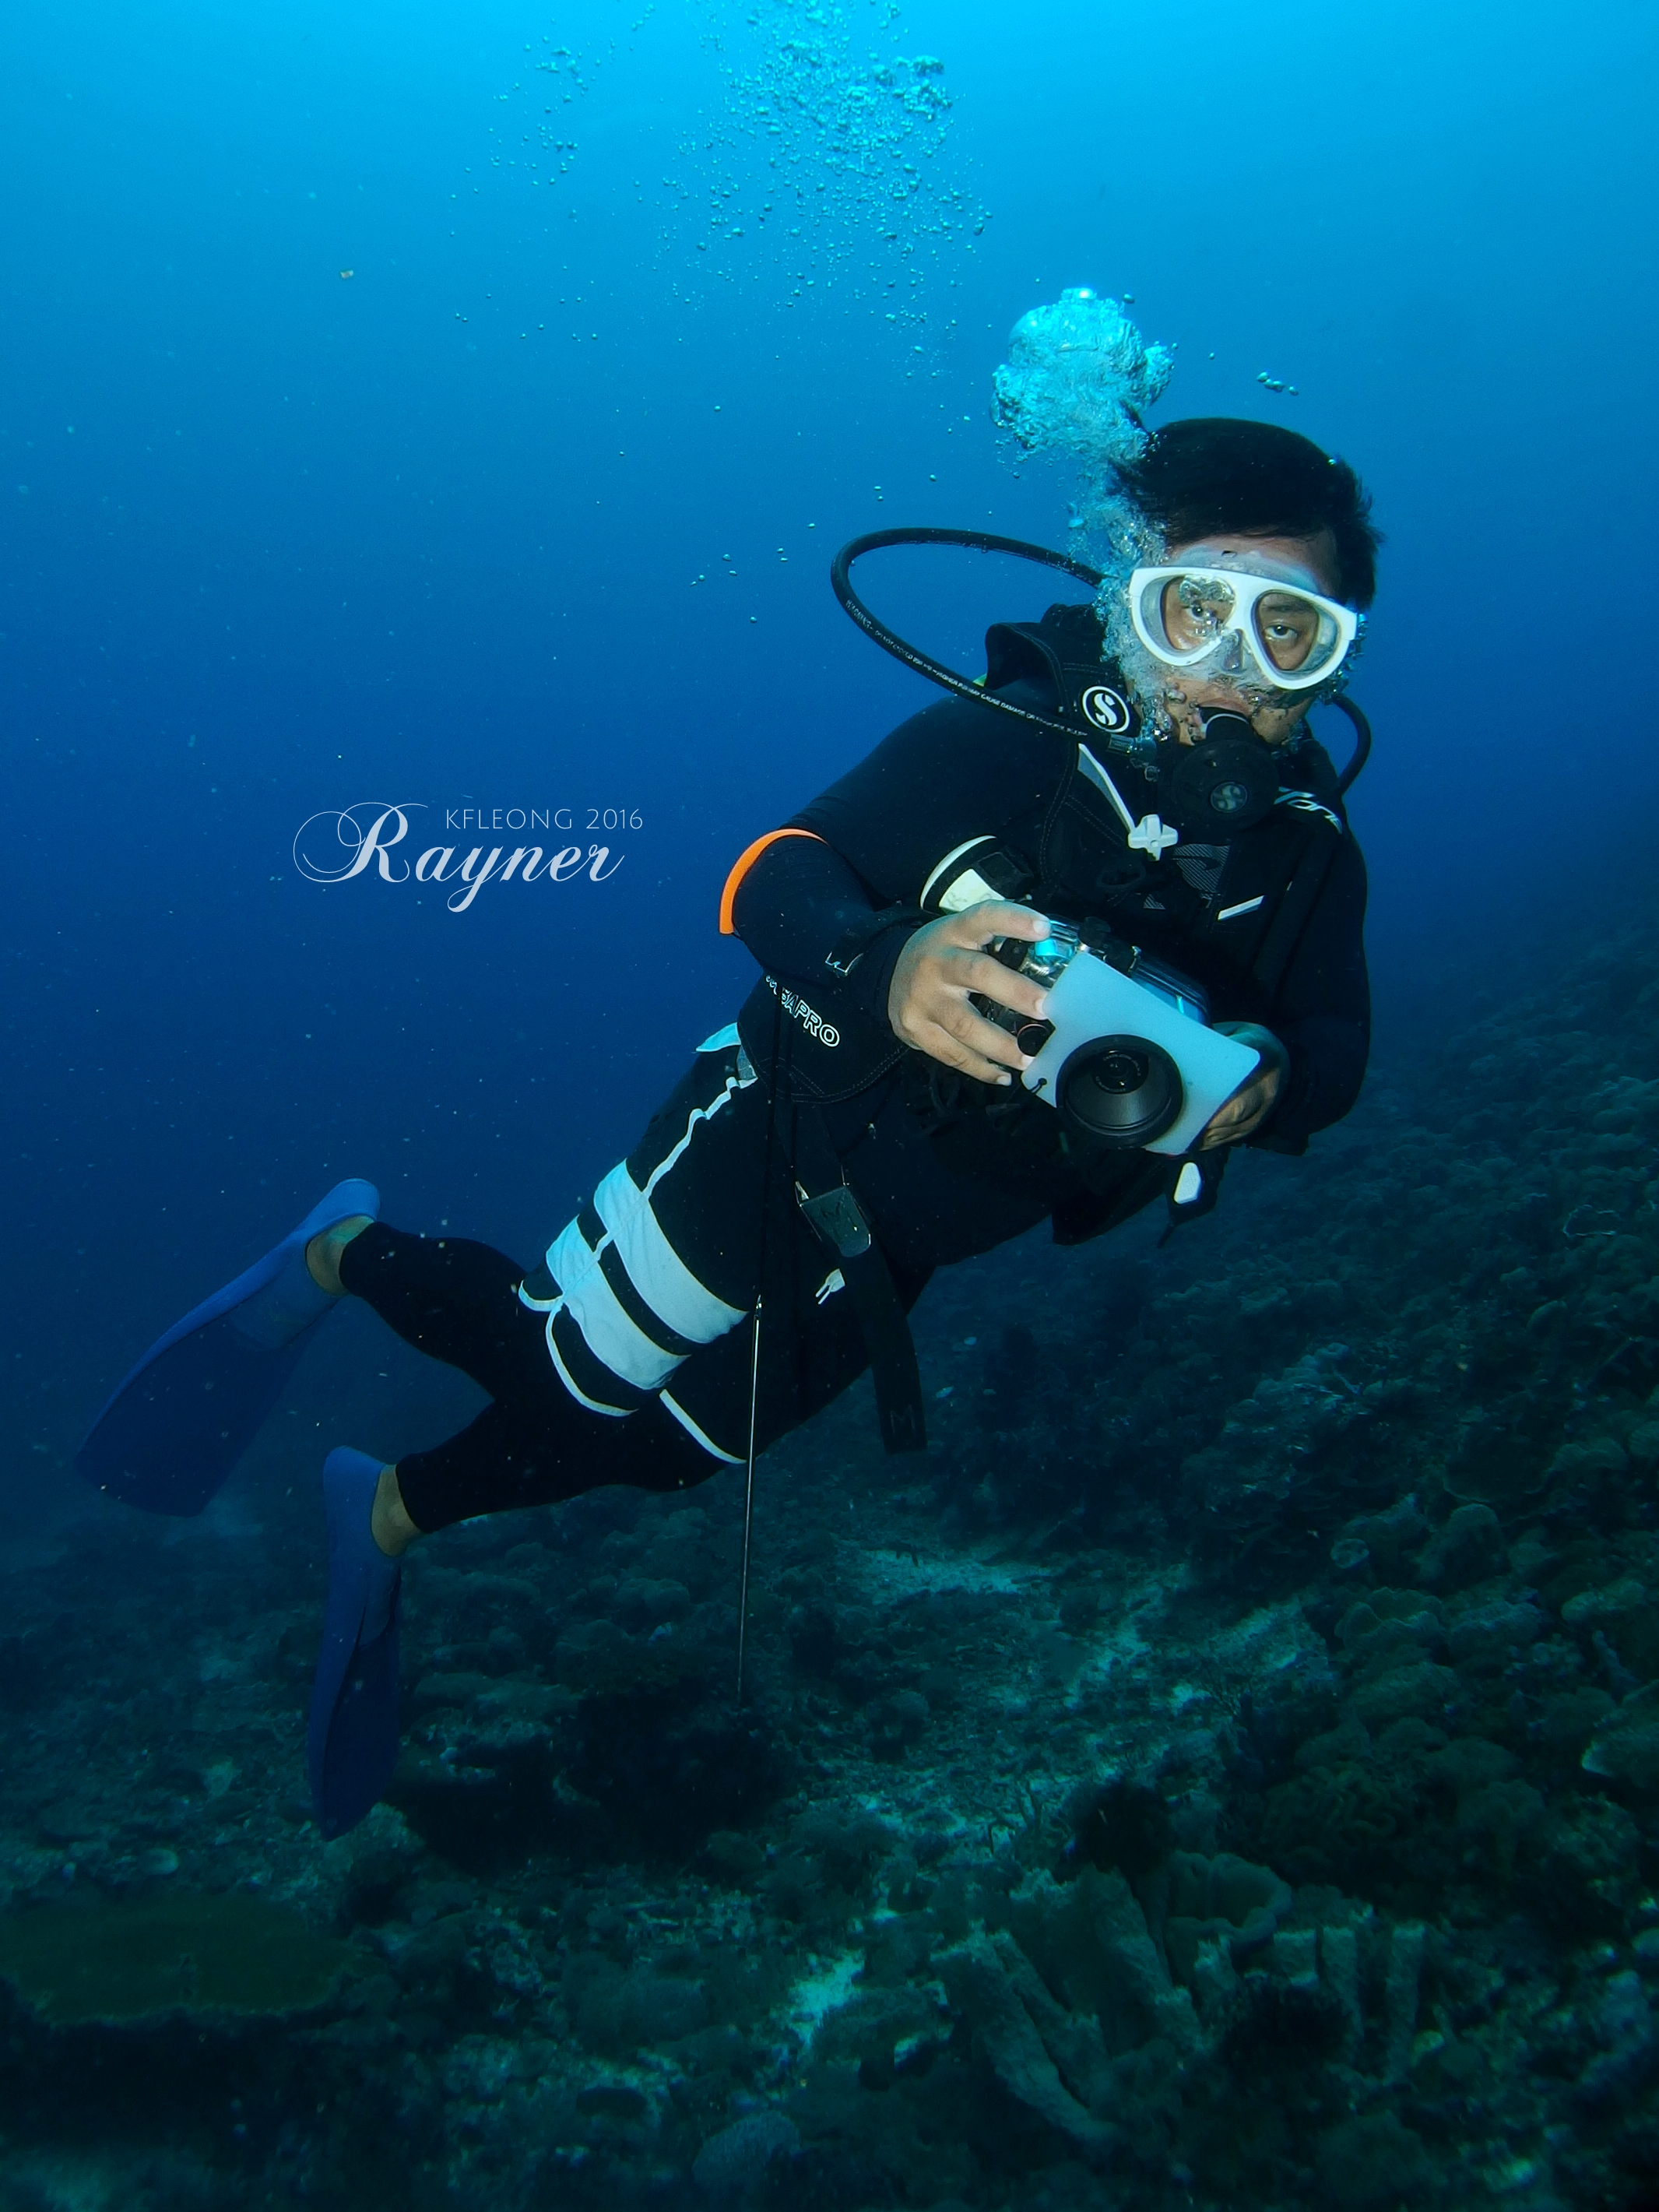 Instructor doing fun dive